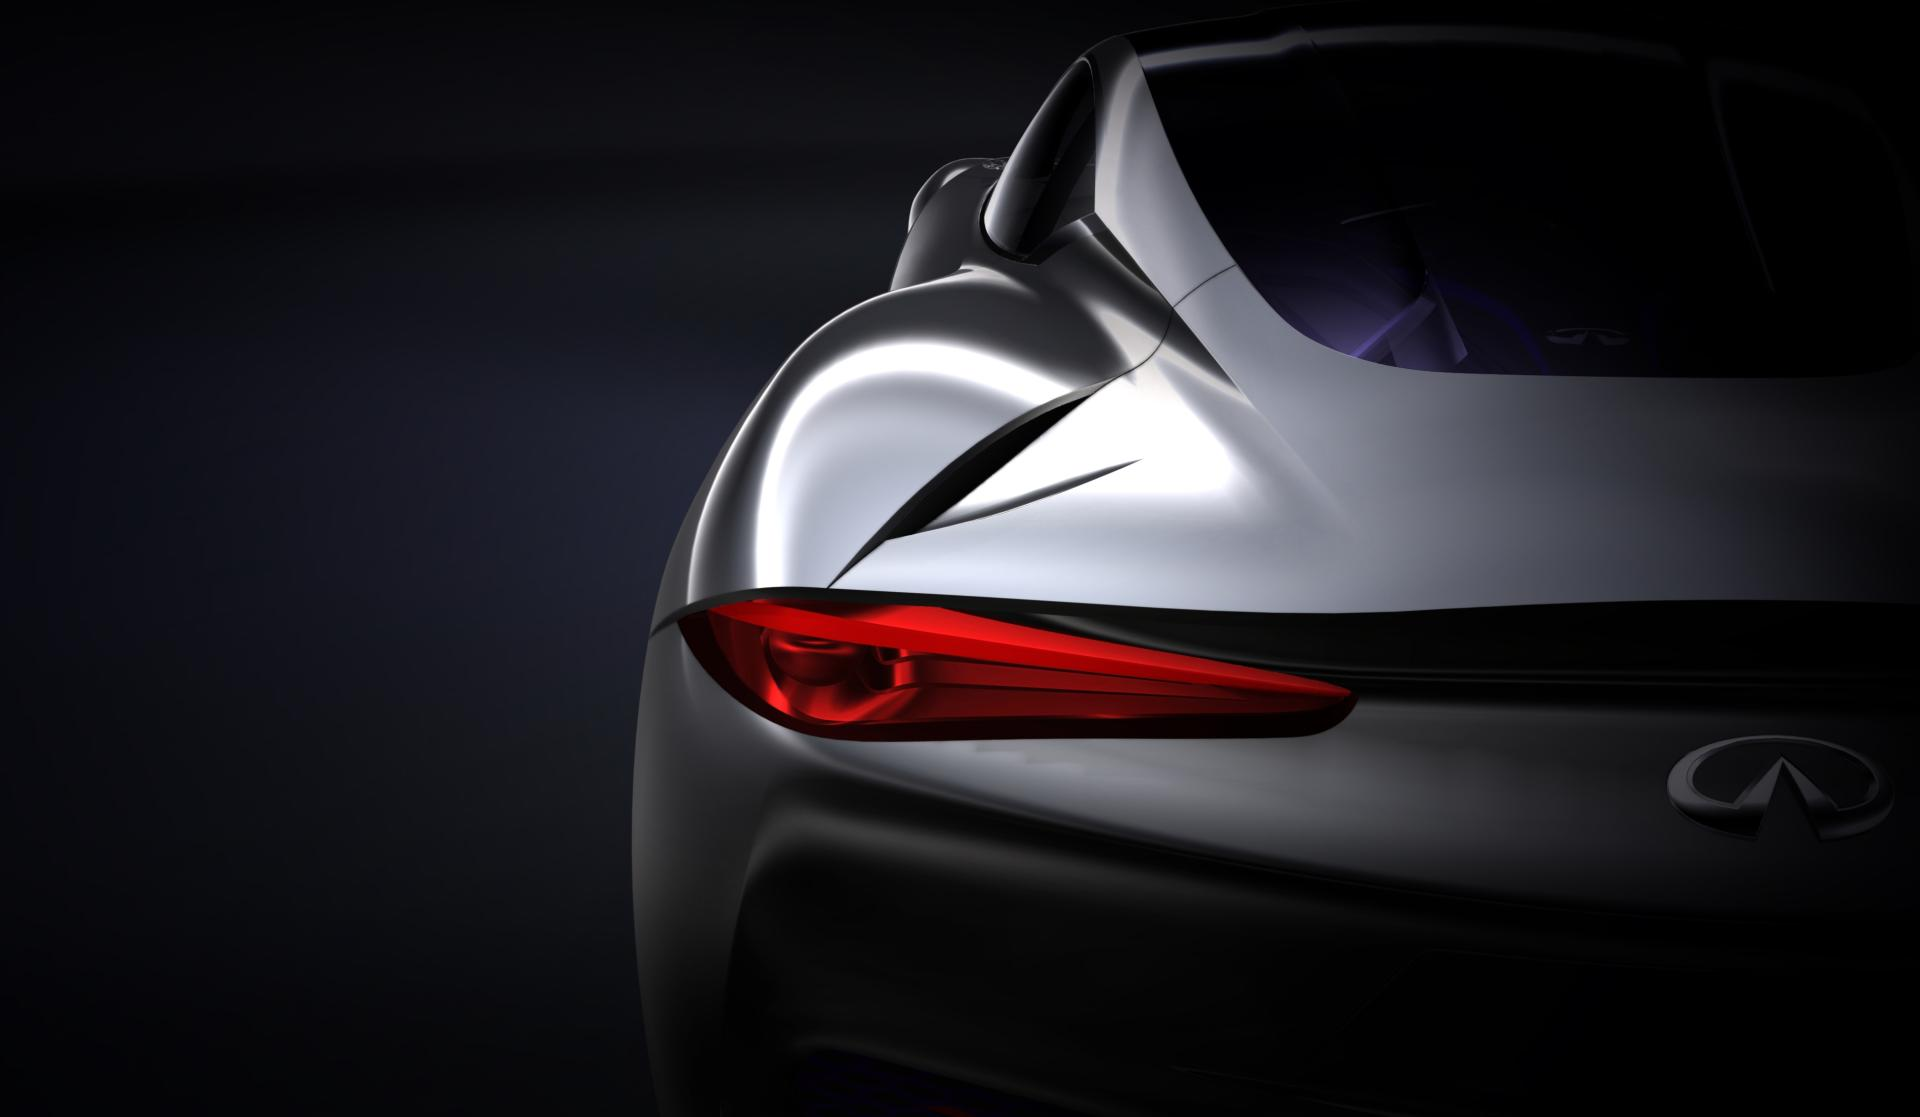 Beautiful 2012 Infiniti Sports Car Concept